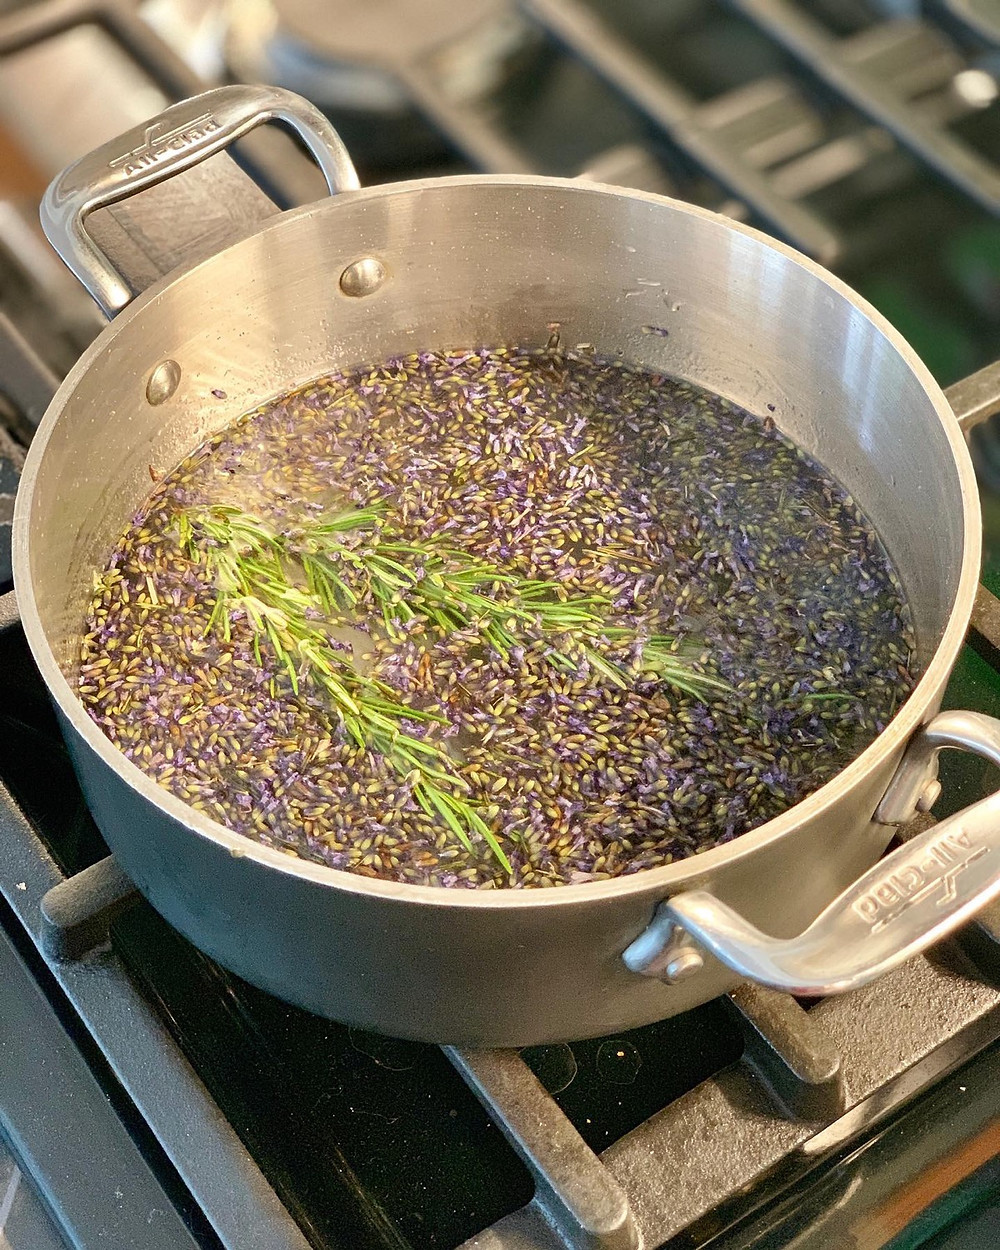 Dried lavender and two sprigs of rosemary in a small, shallow pot on the stove. They are floating in dissolved sugar and water.